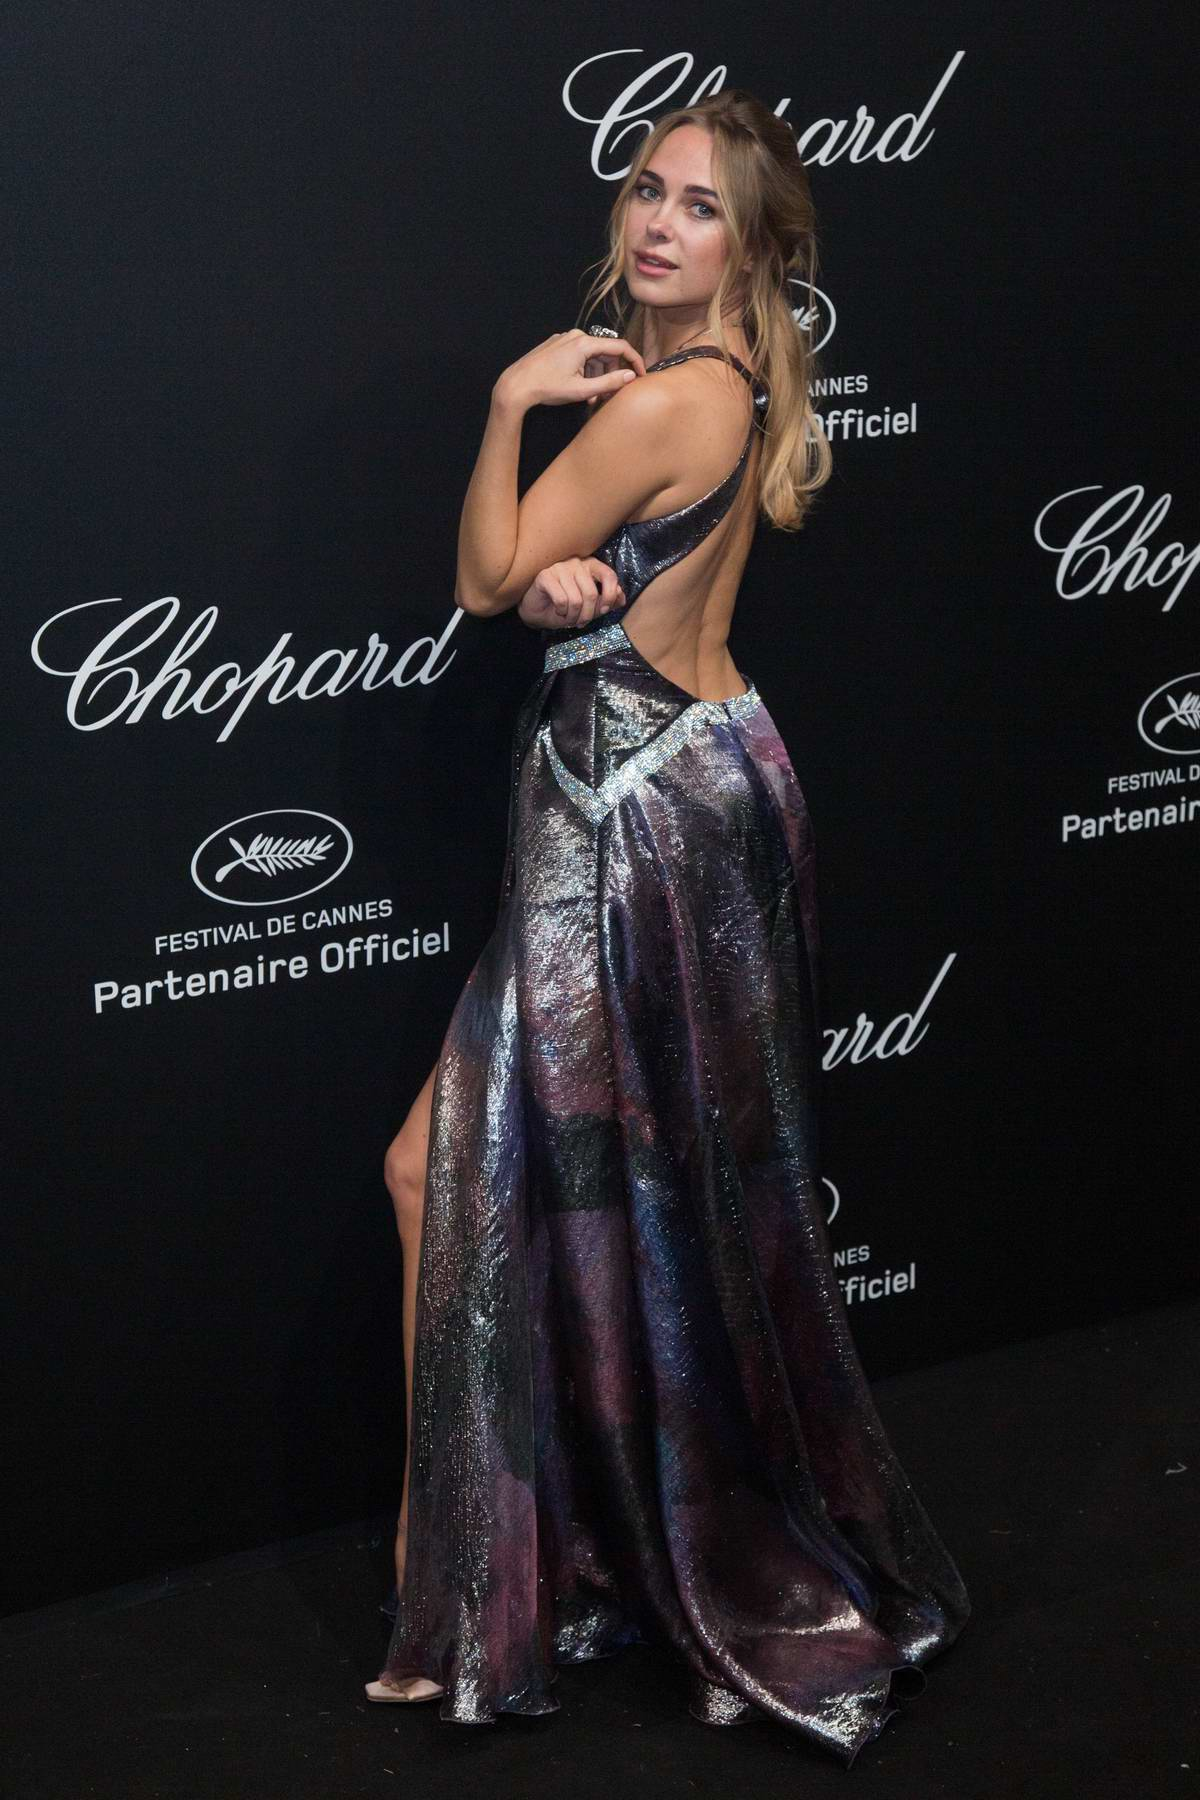 kimberley garner attends secret chopard party during the 71st cannes film festival in cannes, france